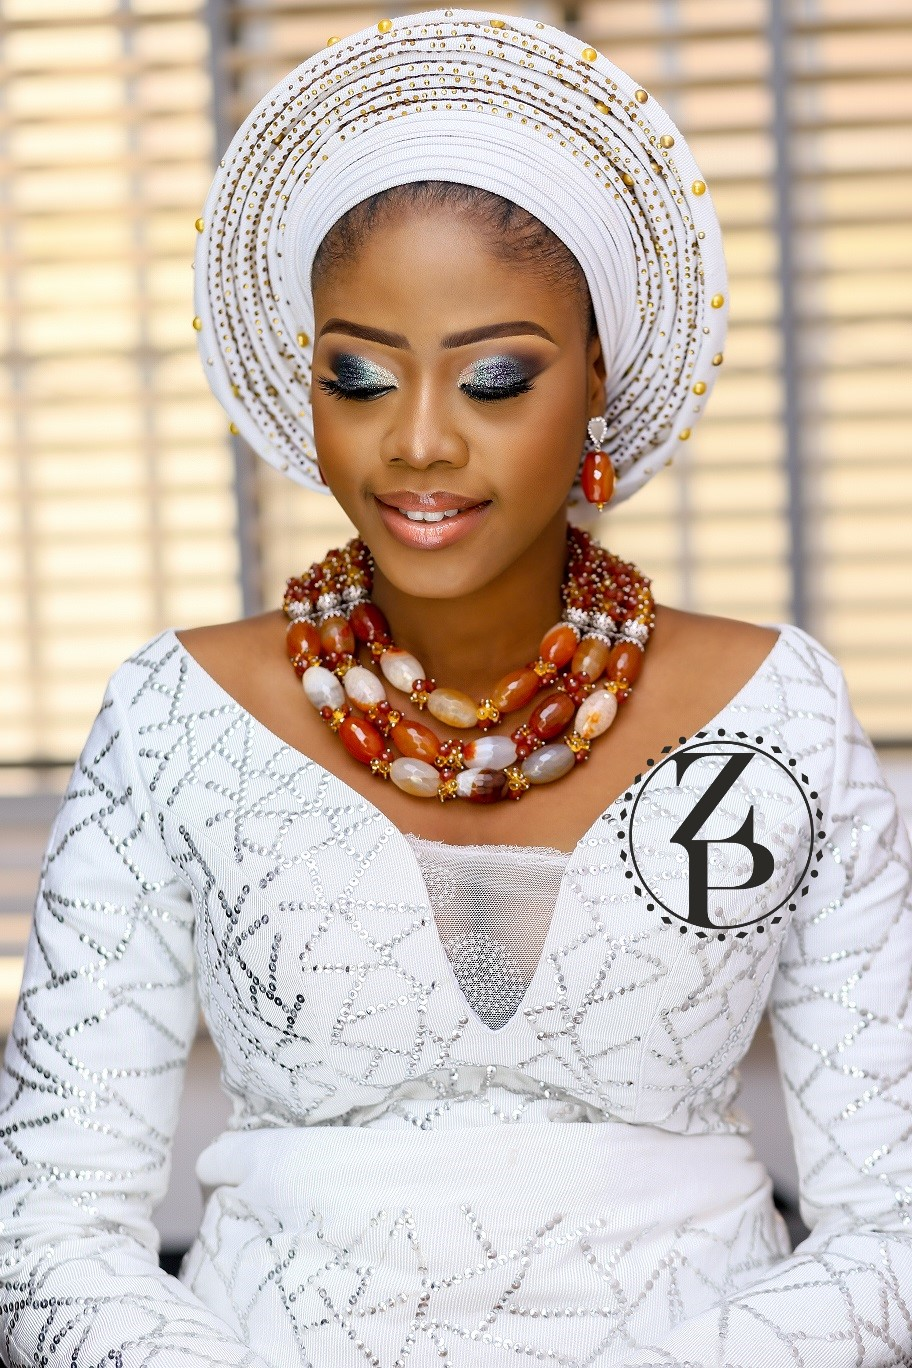 woman-in-nigerian-wedding-outfit-white-iro-and-bub-and-zuri-perle-beads.jpg